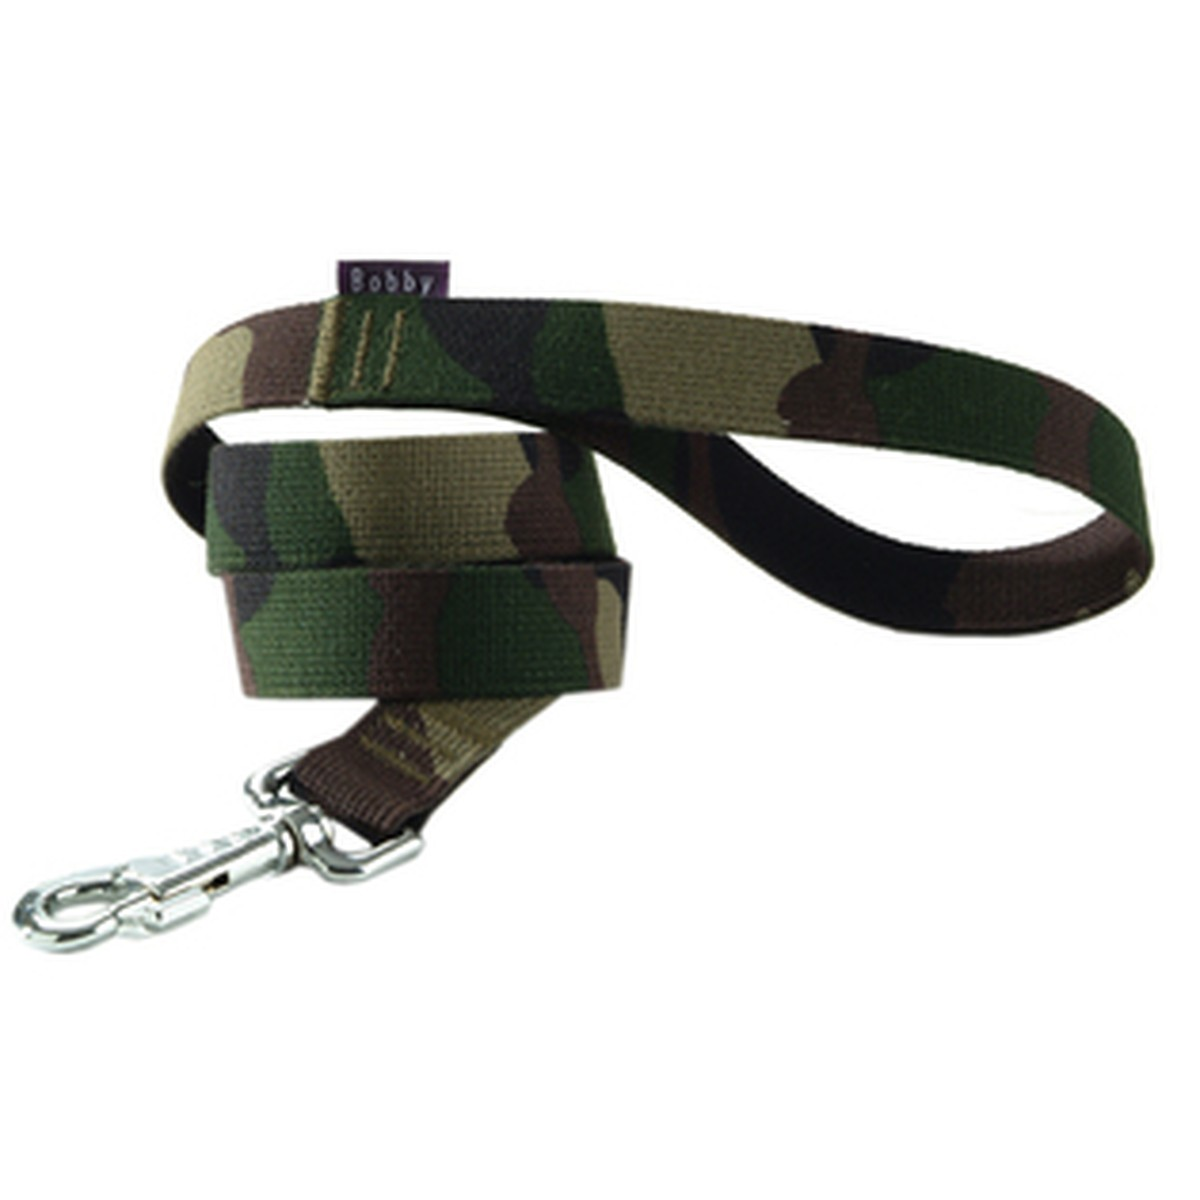 Laisse camouflage nyl. t25 Vert militaire 25